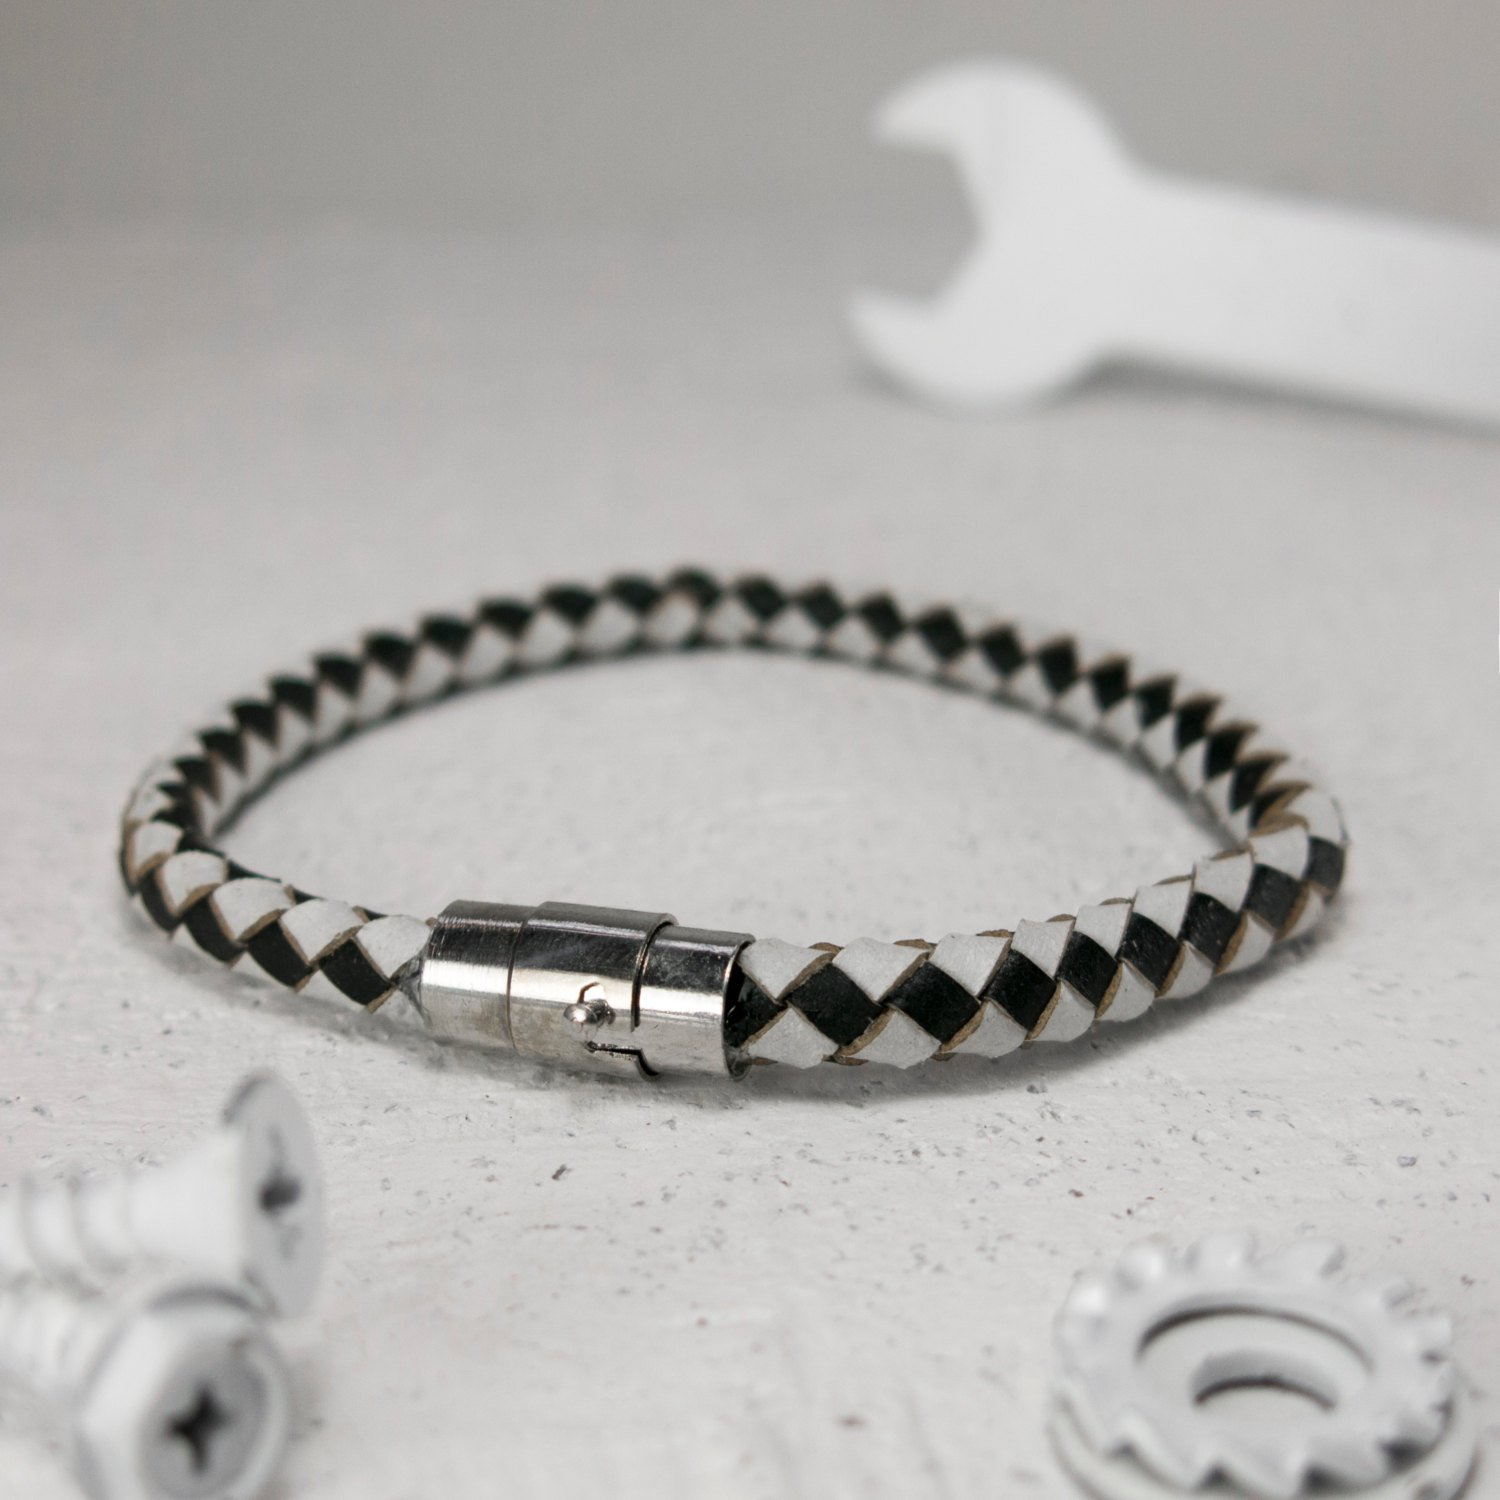 Men Bracelet - Men Jewelry - Men Vegan Bracelet - Men Gift - Bracelets For Men